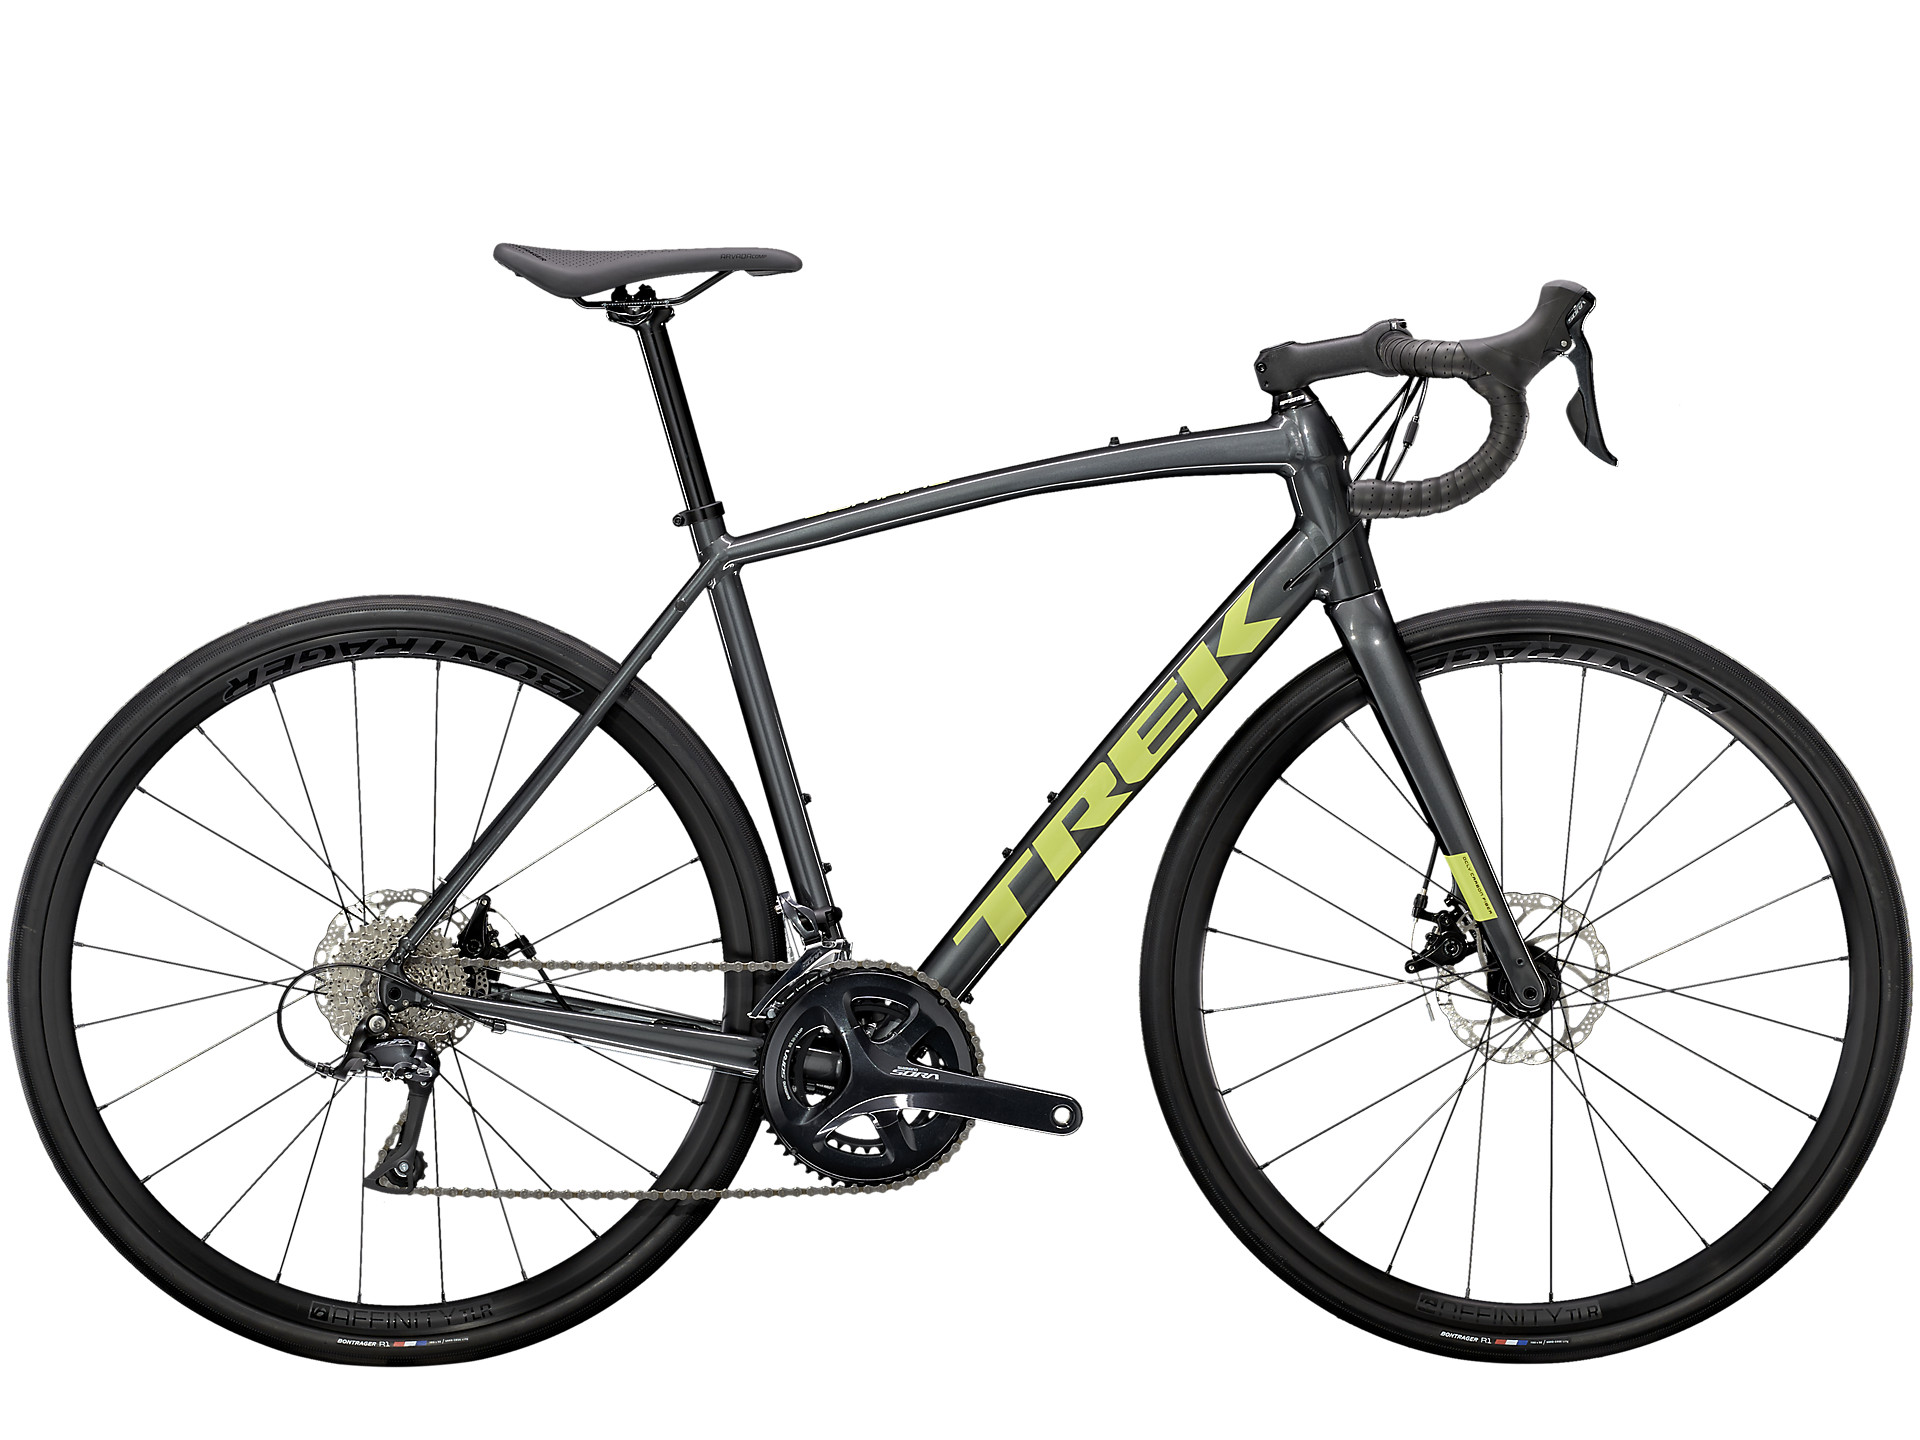 Trek Domane AL 3 Disc Unisex Sportive Road Bike 2021 in